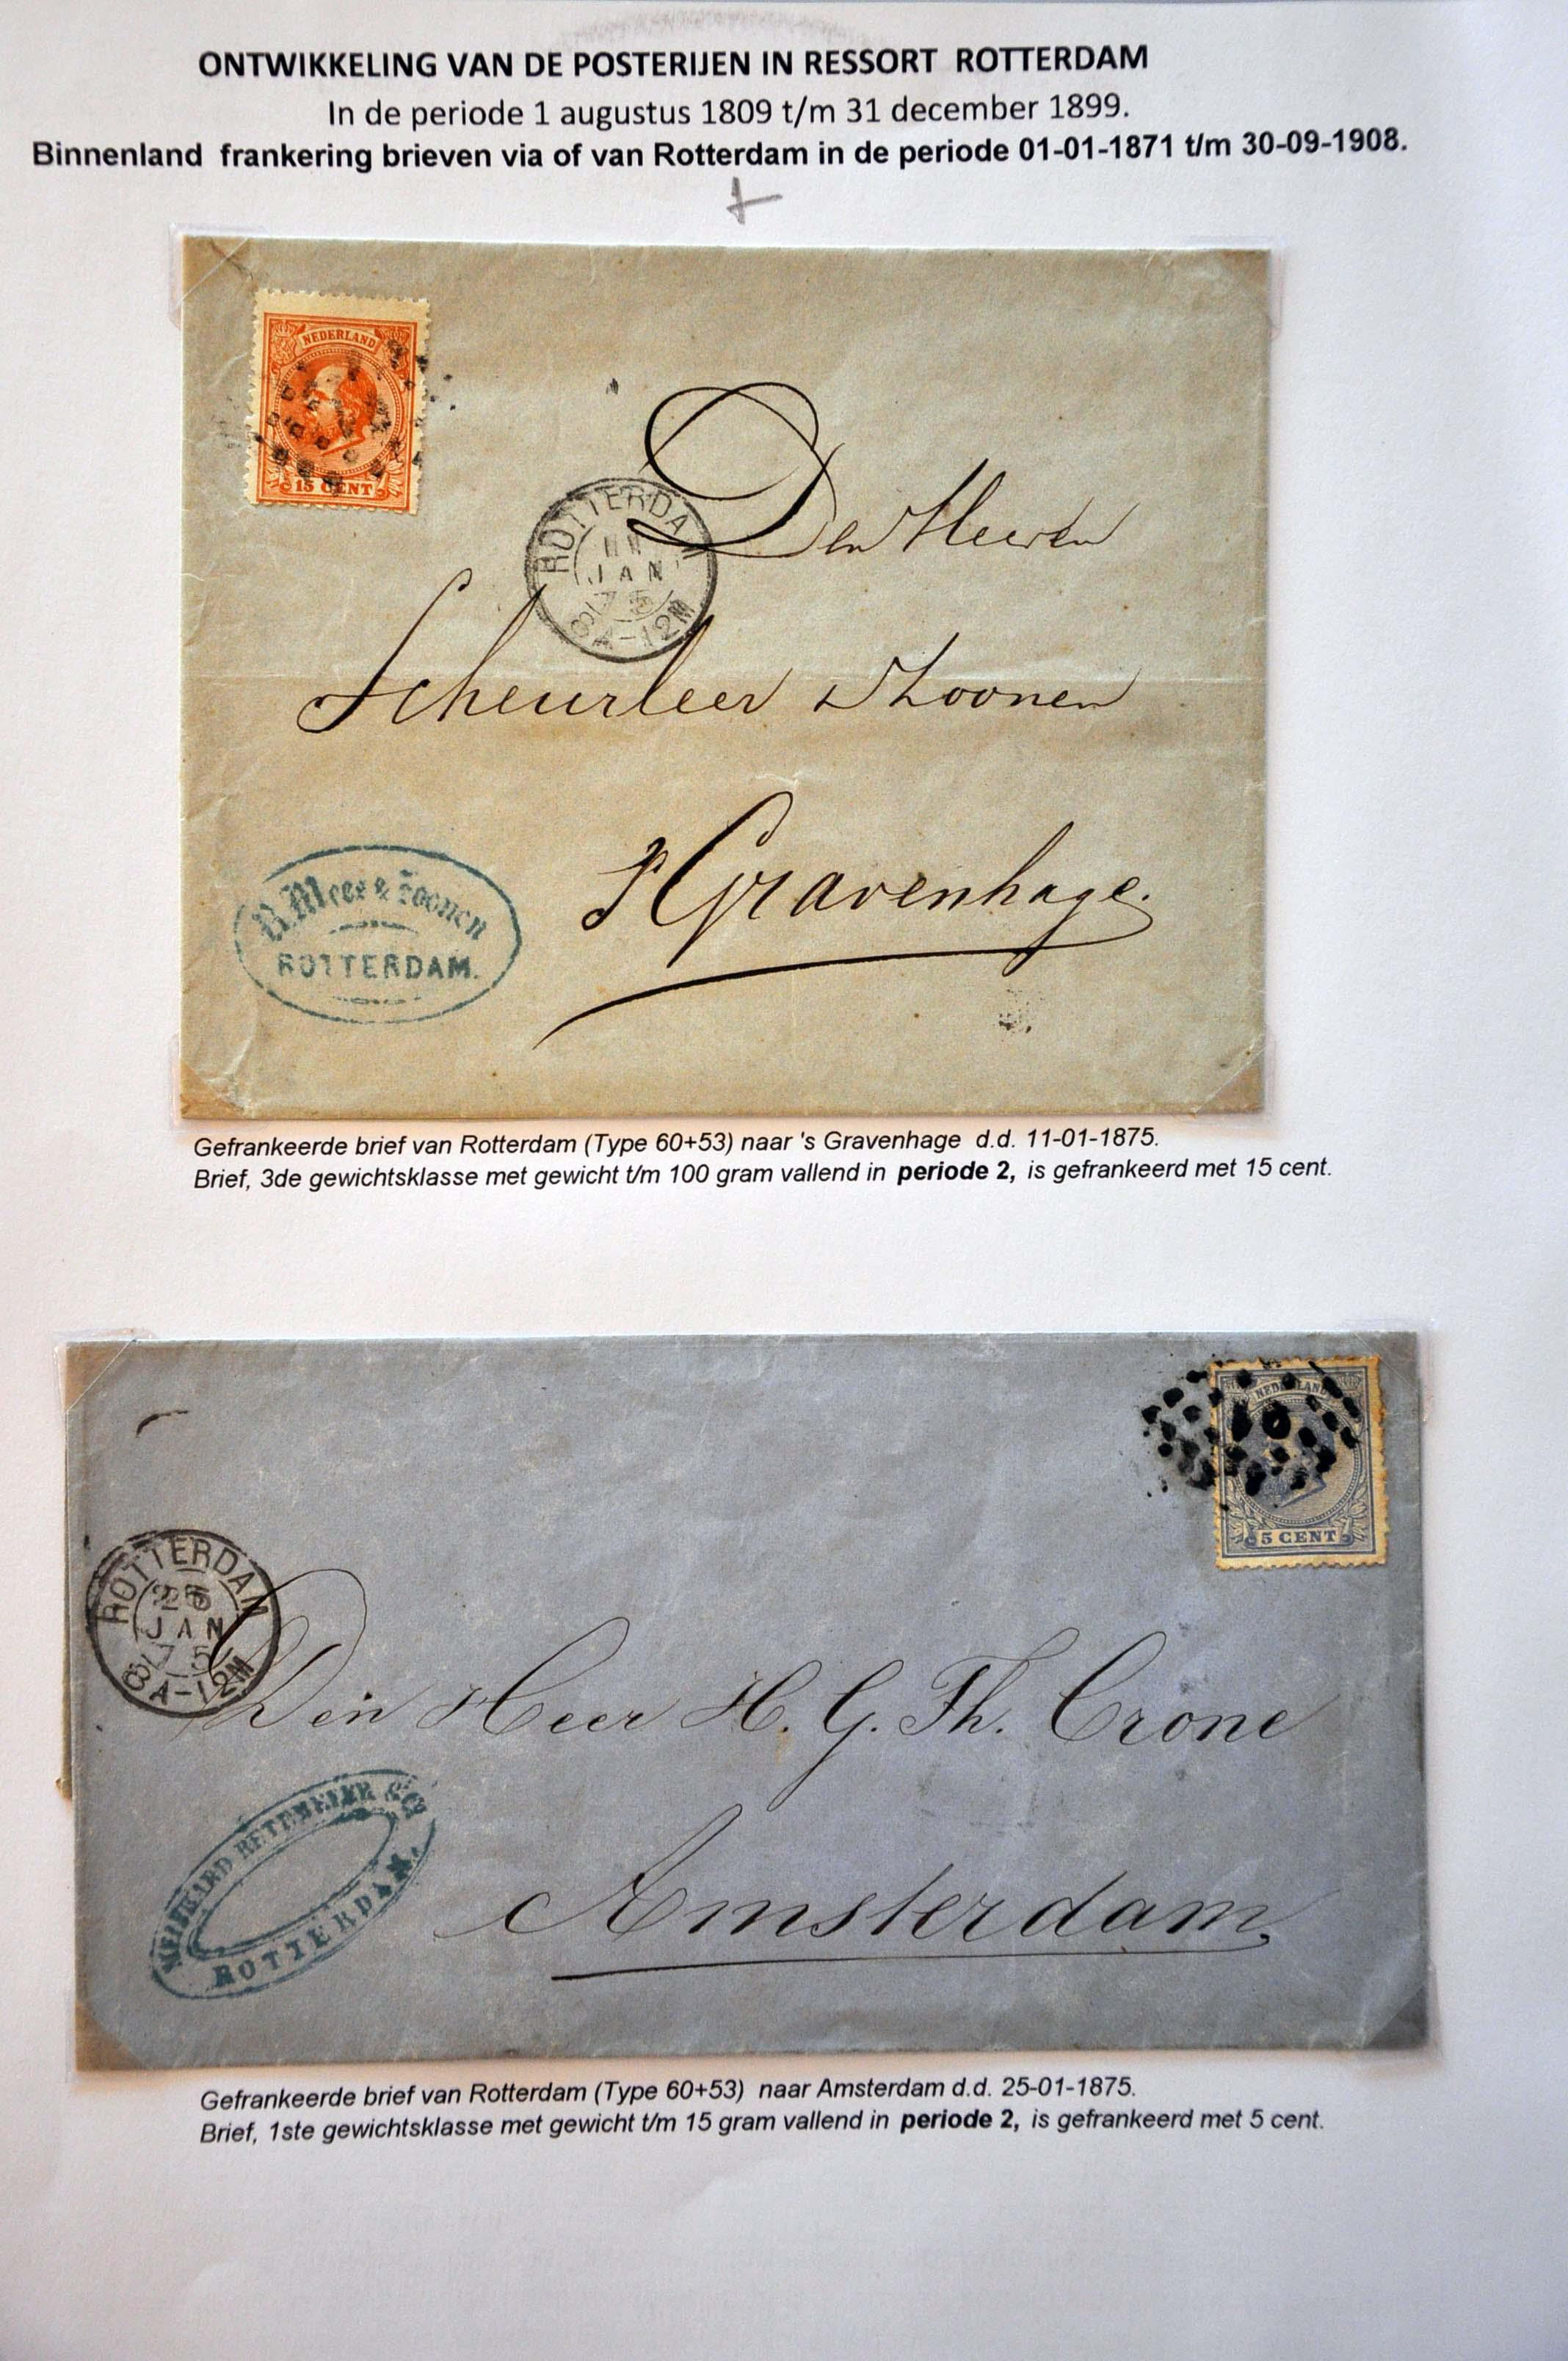 Lot 2583 - Netherlands and former colonies Netherlands -  Corinphila Veilingen Auction 245-246 Day 3 - Netherlands and former colonies - Single lots, Collections and lots, Boxes and literature